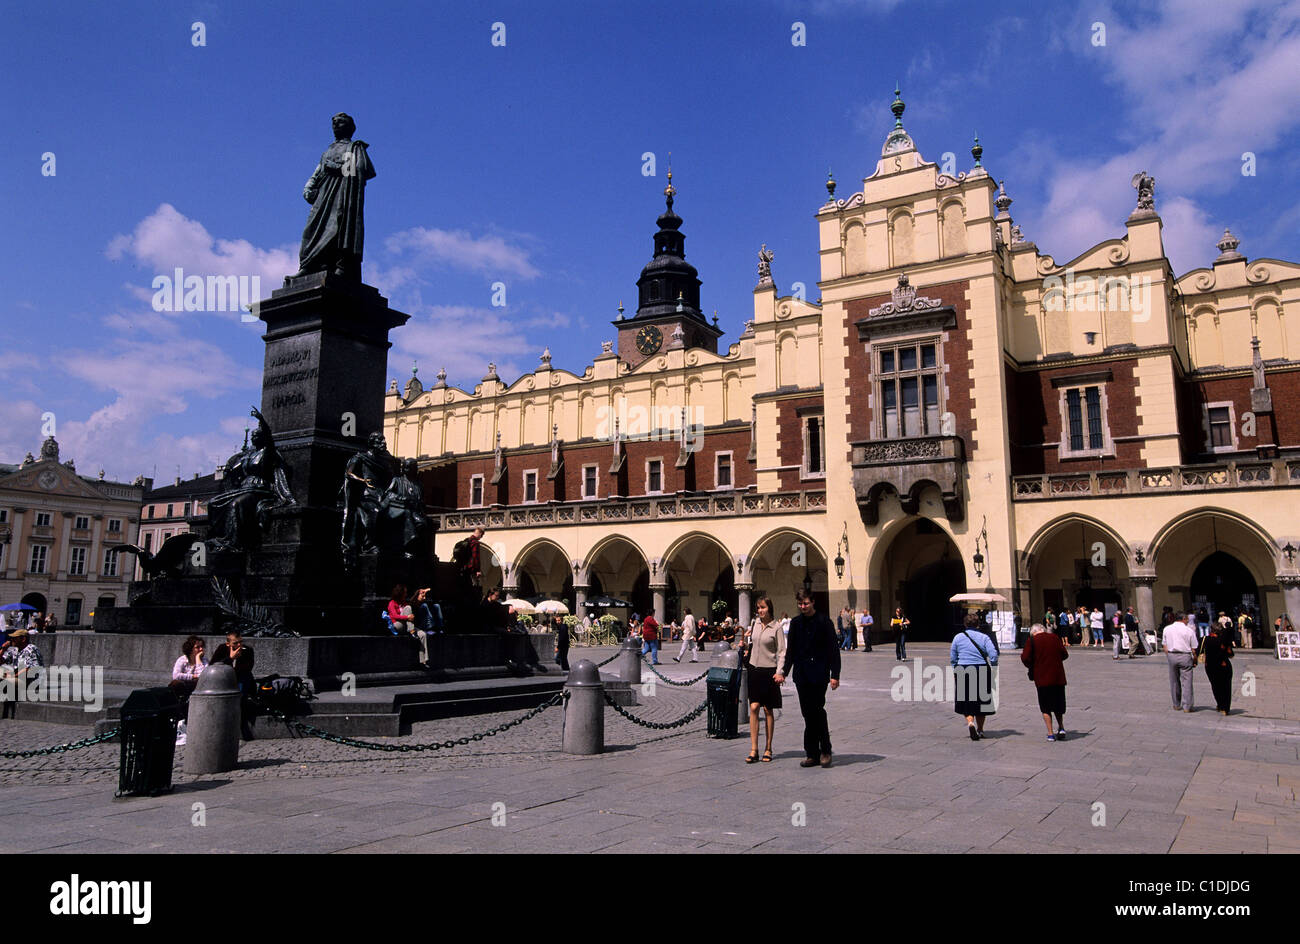 Poland Lesser Poland region Krakow old town (Stare Miasto) the Sukiennice (Cloth Hall) on the market square & - Stock Image